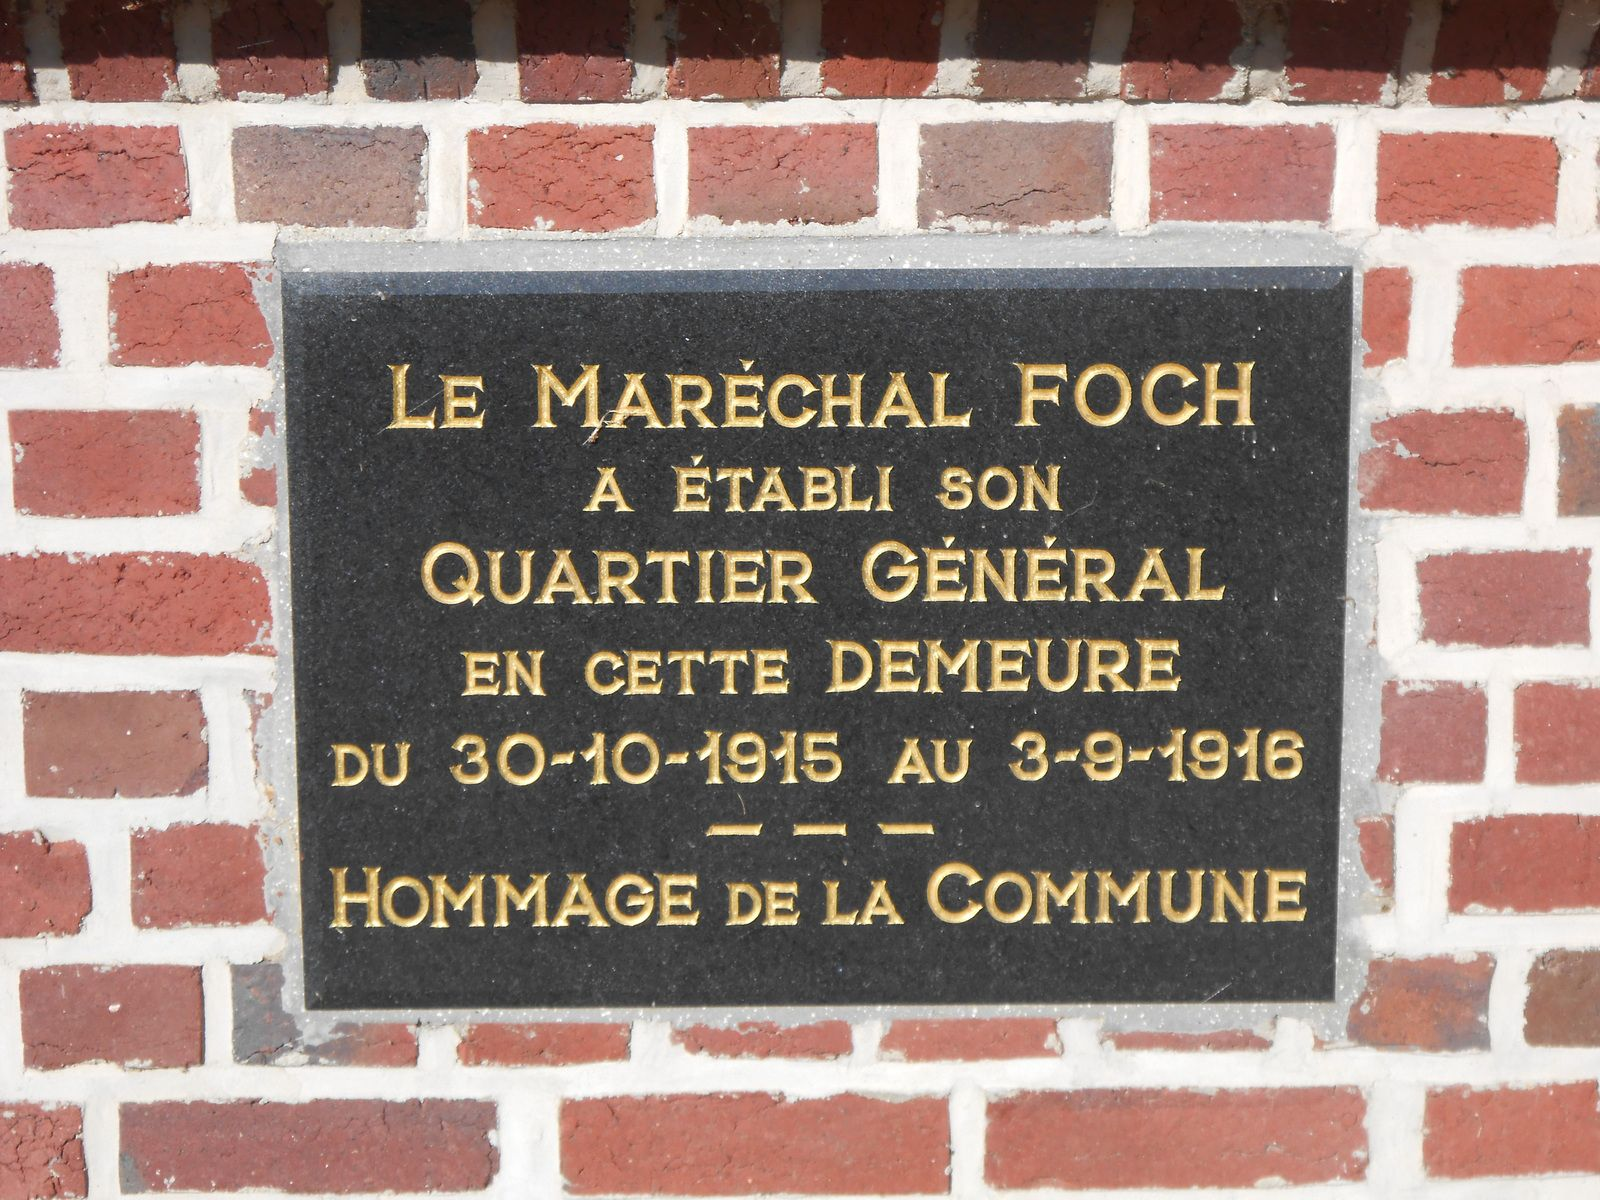 photo 5 - DURY - Maison état-major Foch 1ère guerre mondiale